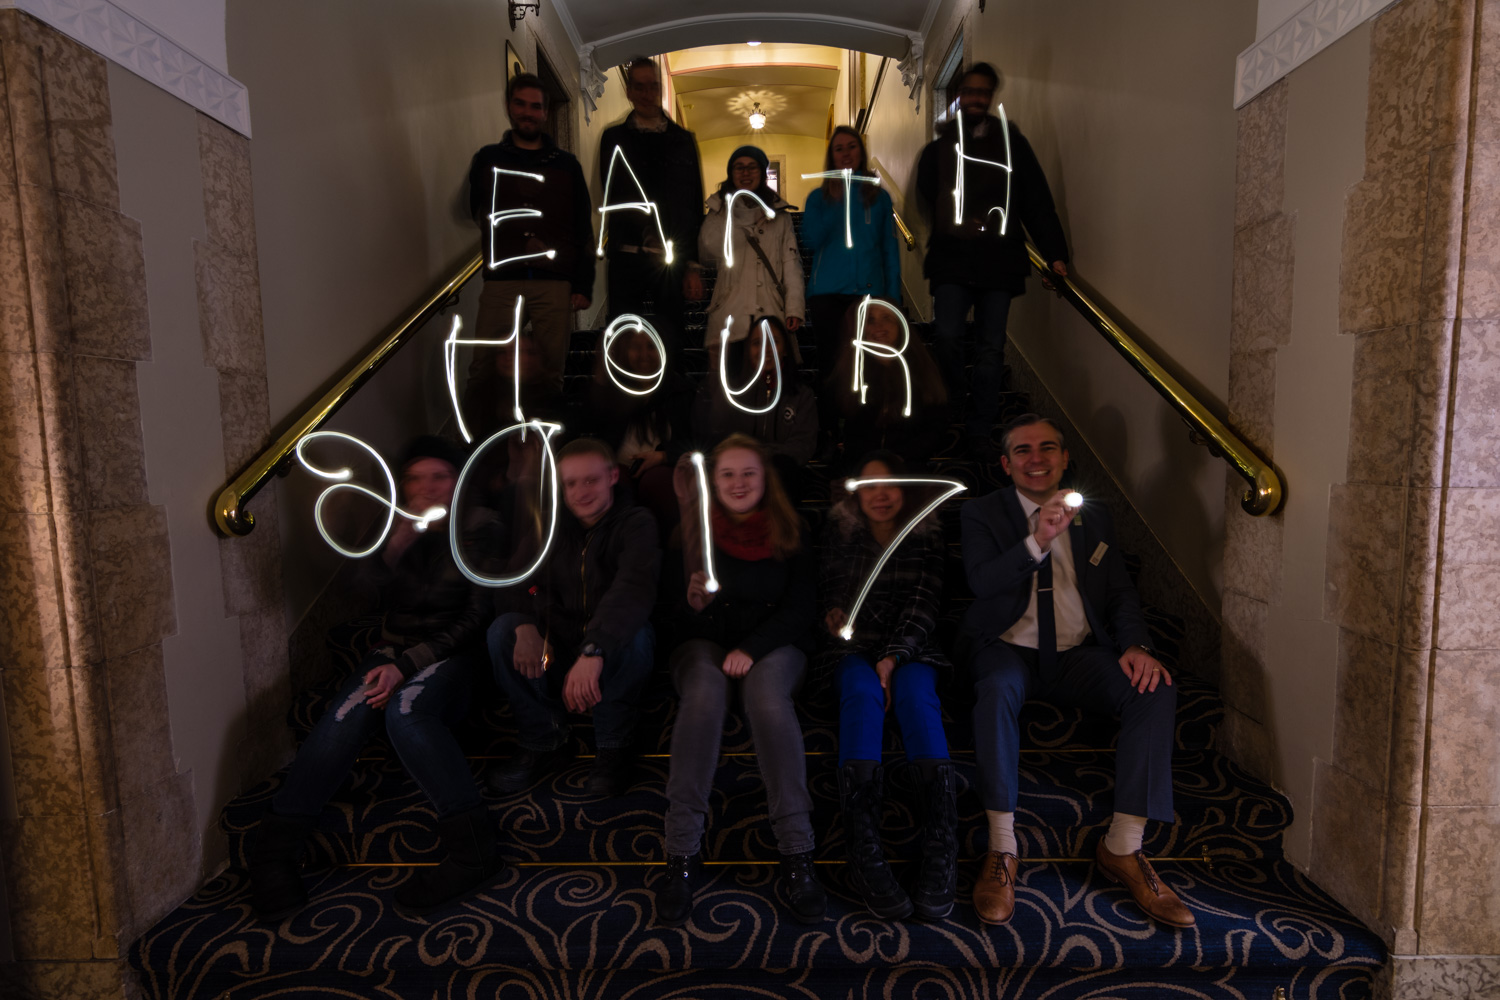 """Taking this photo was one of the funniest things I have ever done. With my camera setup on a tripod for a long exposure I had to direct everyone to write out each letter of """"Earth Hour 2017"""" using electric candles. I would tell everyone to get ready and they would hold there candle in the ready position, I told them to go and they would all start waving their candle in the air. I felt like I was some sort of wizard professor teaching junior wizards how to cast spells."""